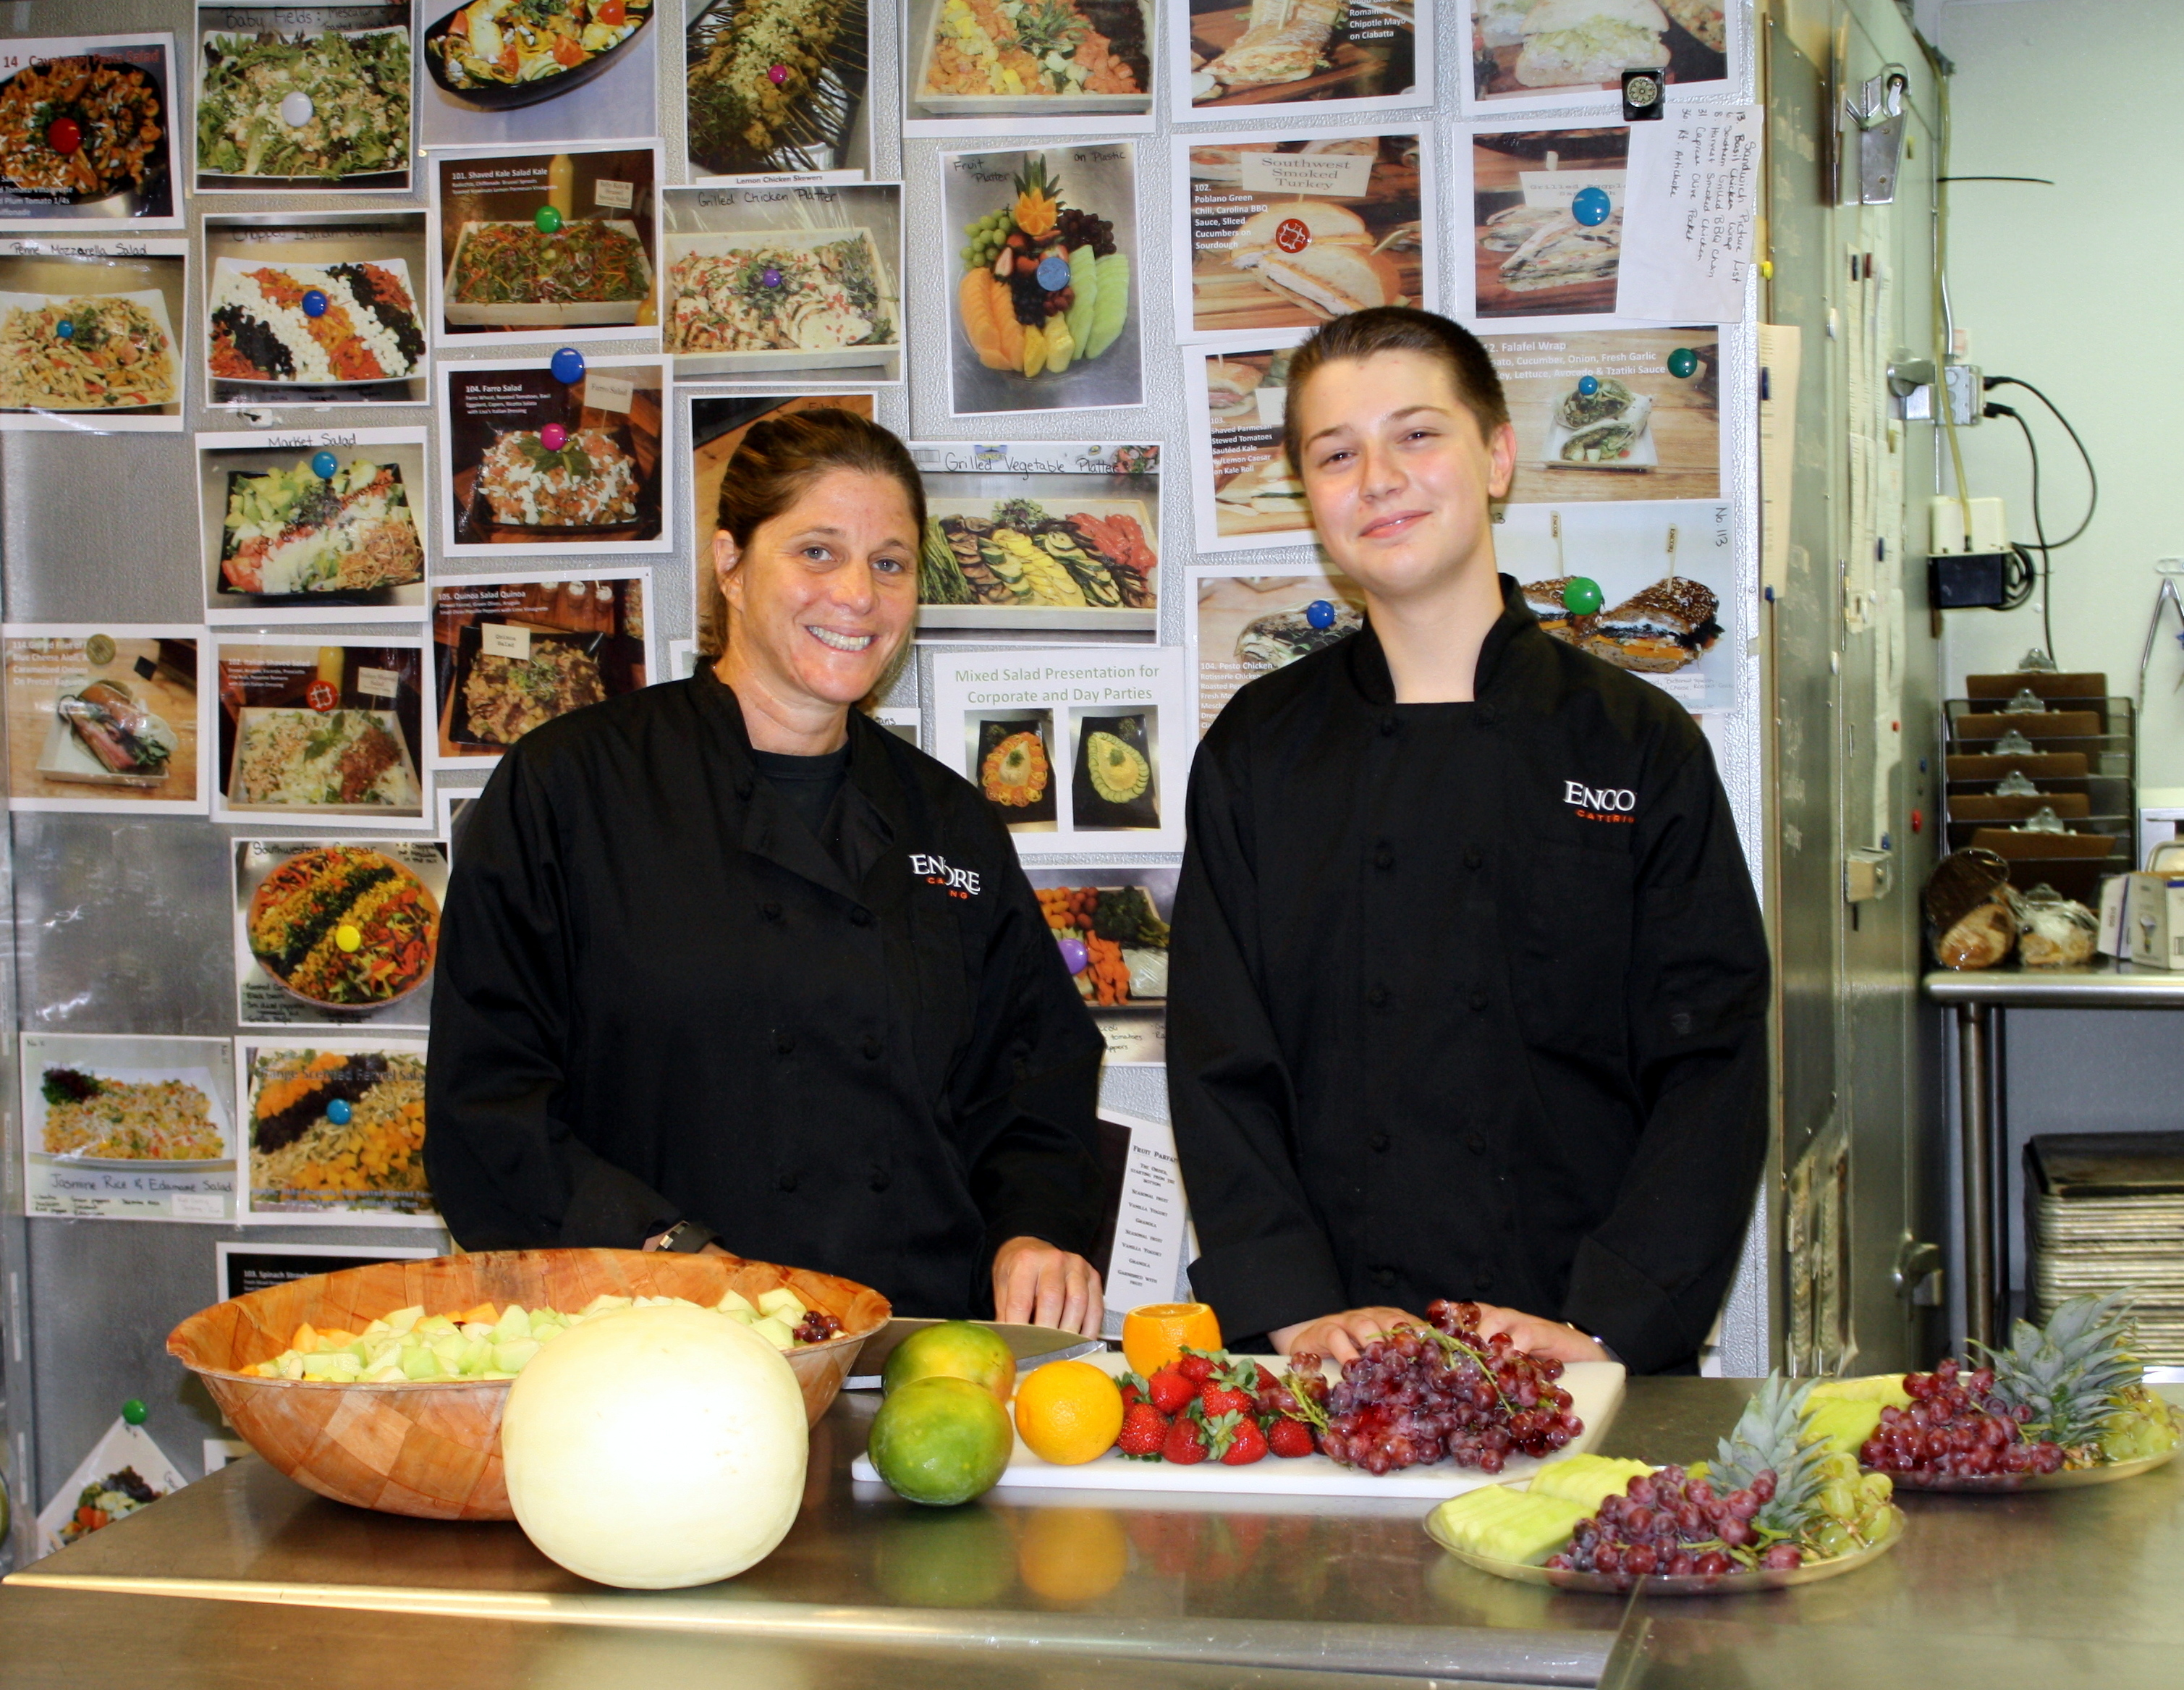 3e49e99713dbb6ca1e6a_Lisa_Epstein__Chef-Owner_with_Intern_-_Encore_Catering.jpg